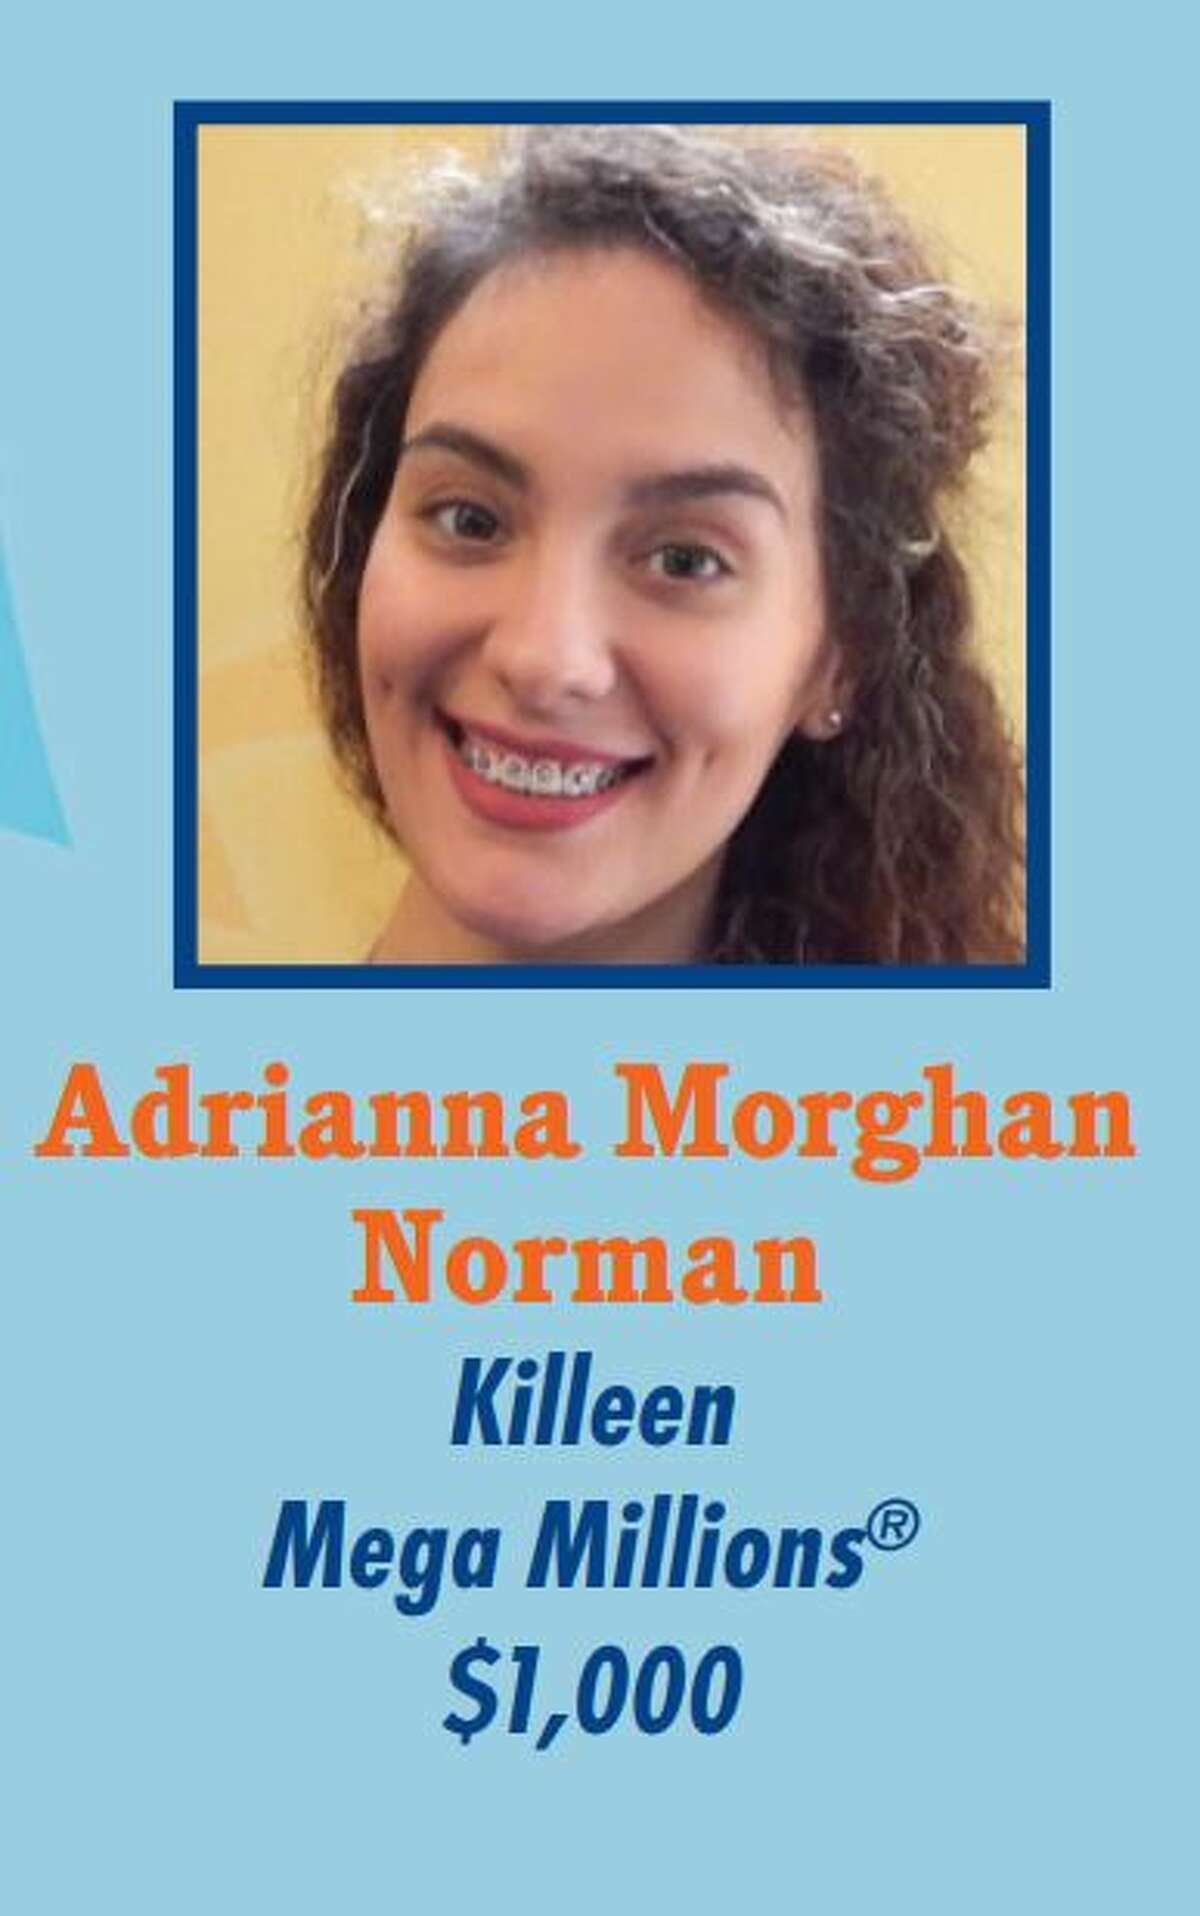 Adrianna Morghan Norman Won: $1,000 Where: Killeen